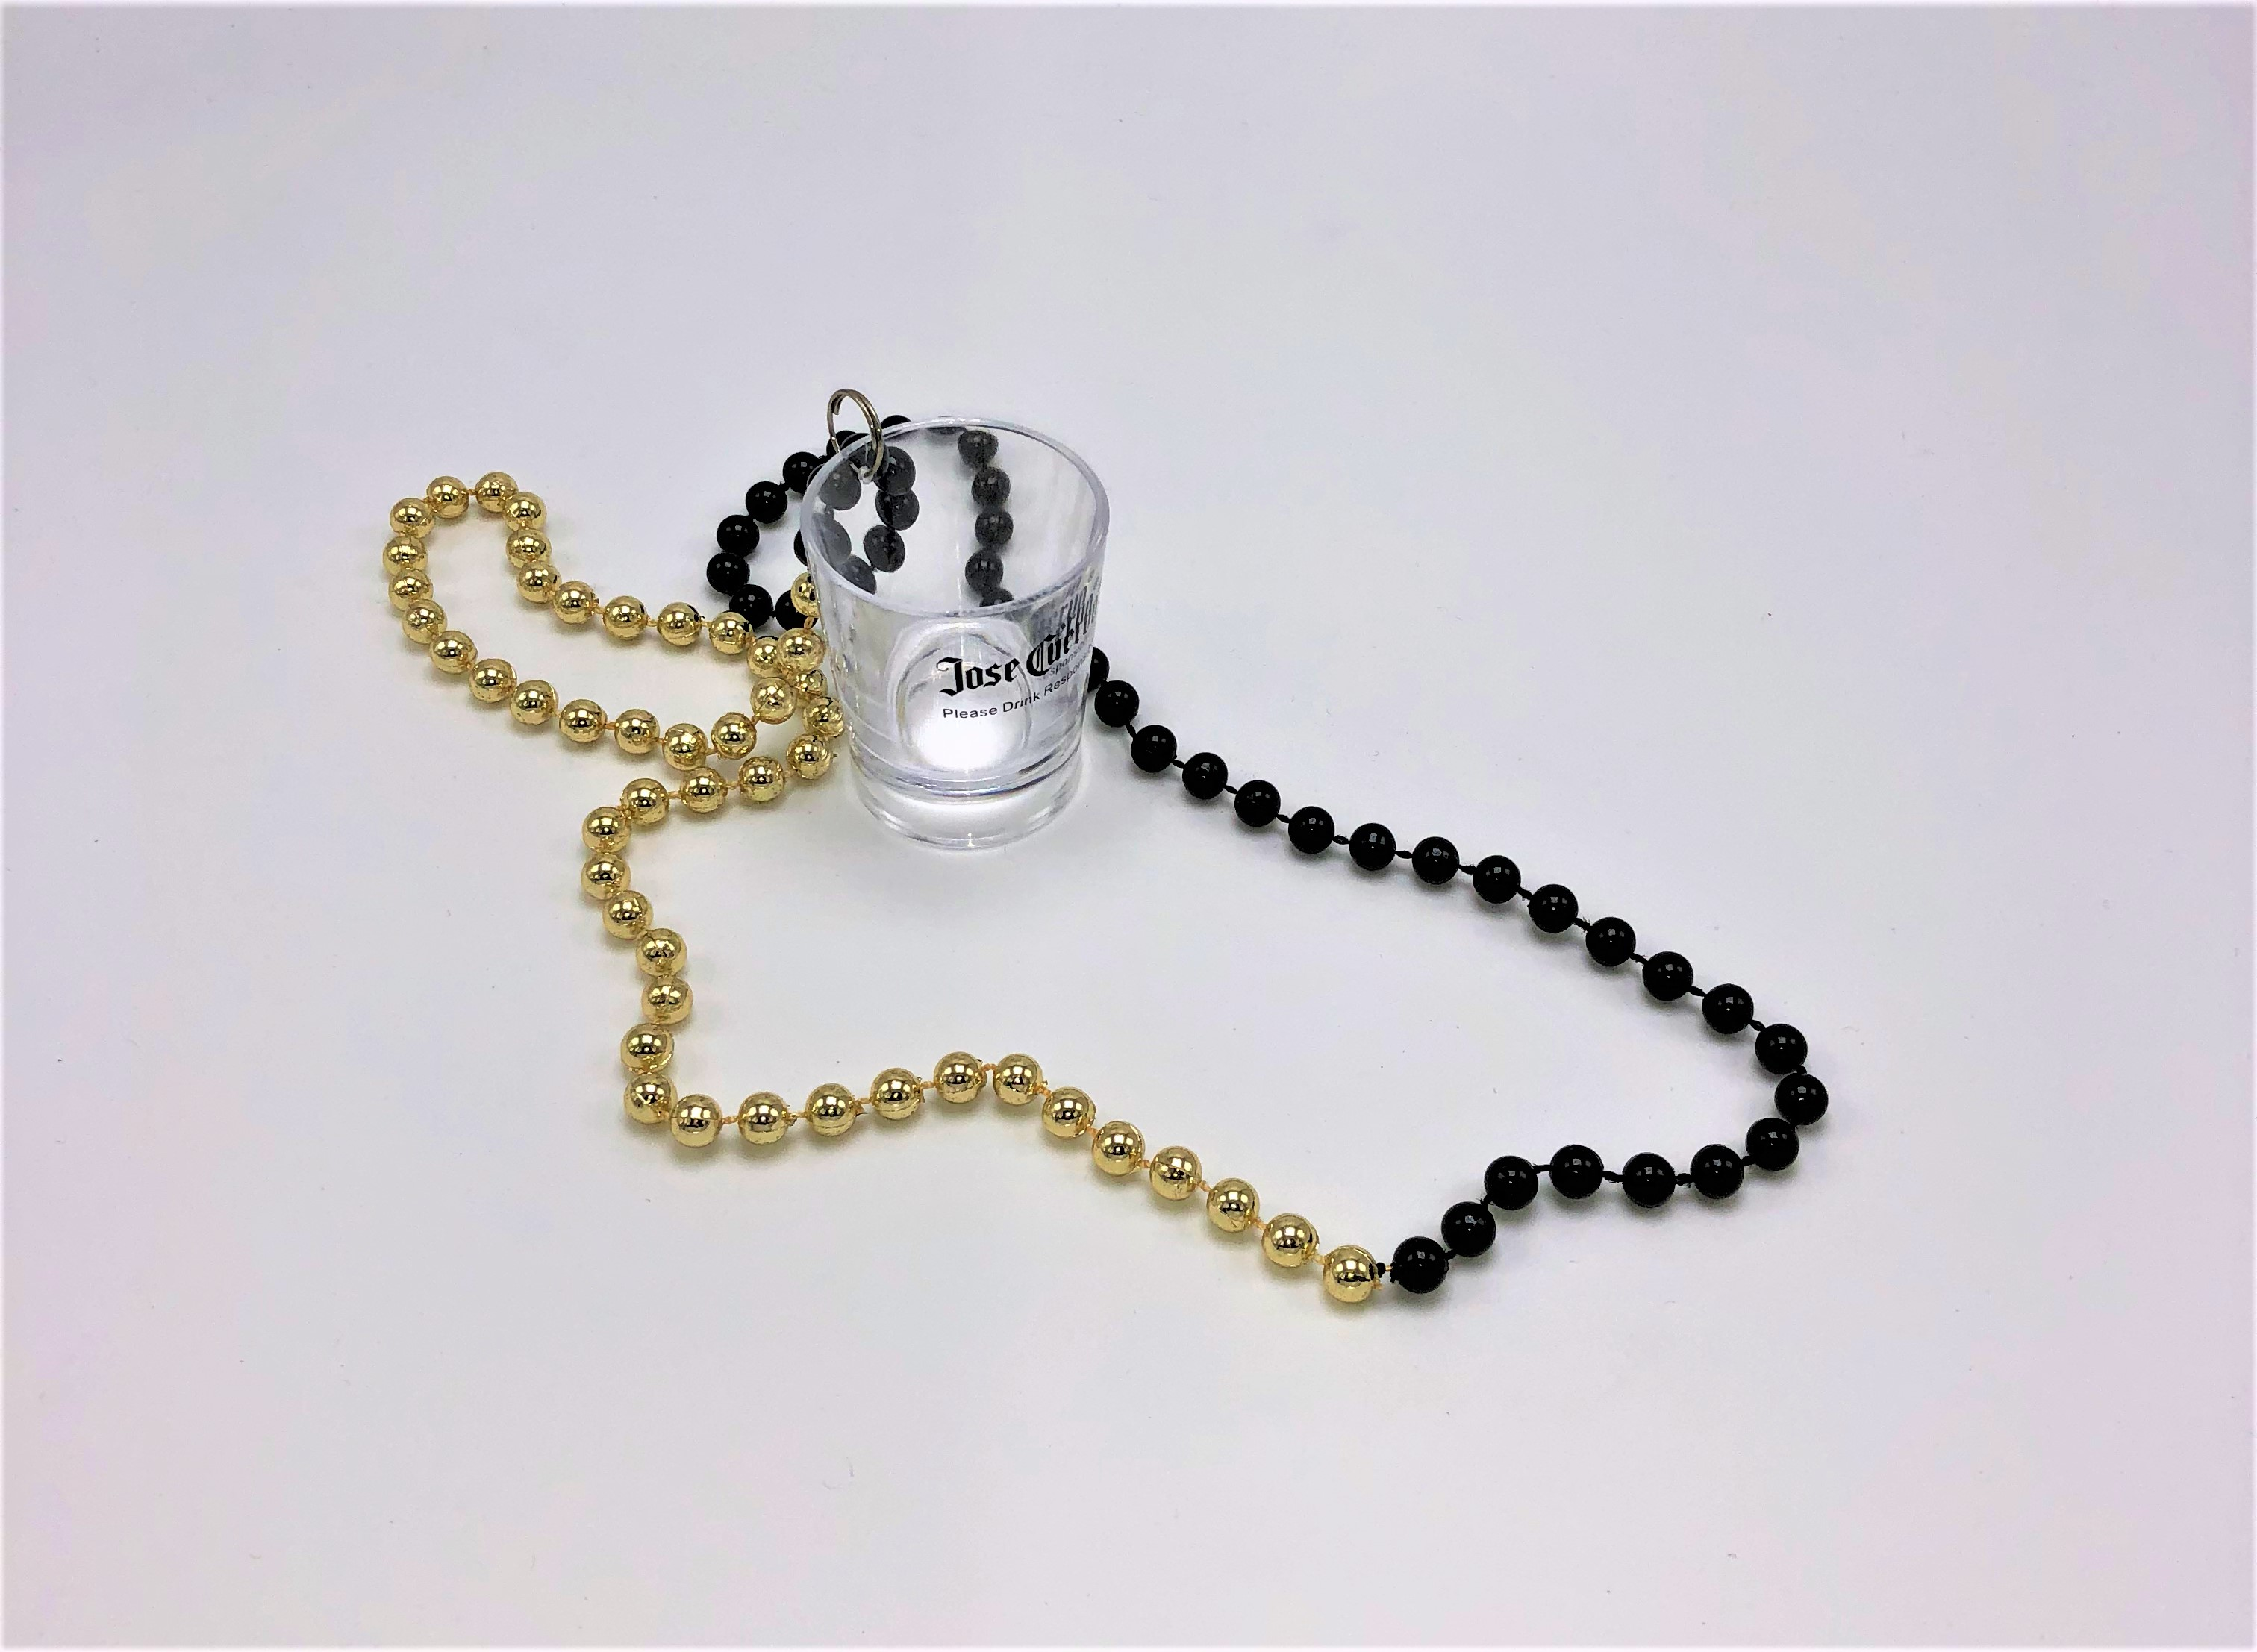 Bead Necklace With Shot Cup (Cuervo)